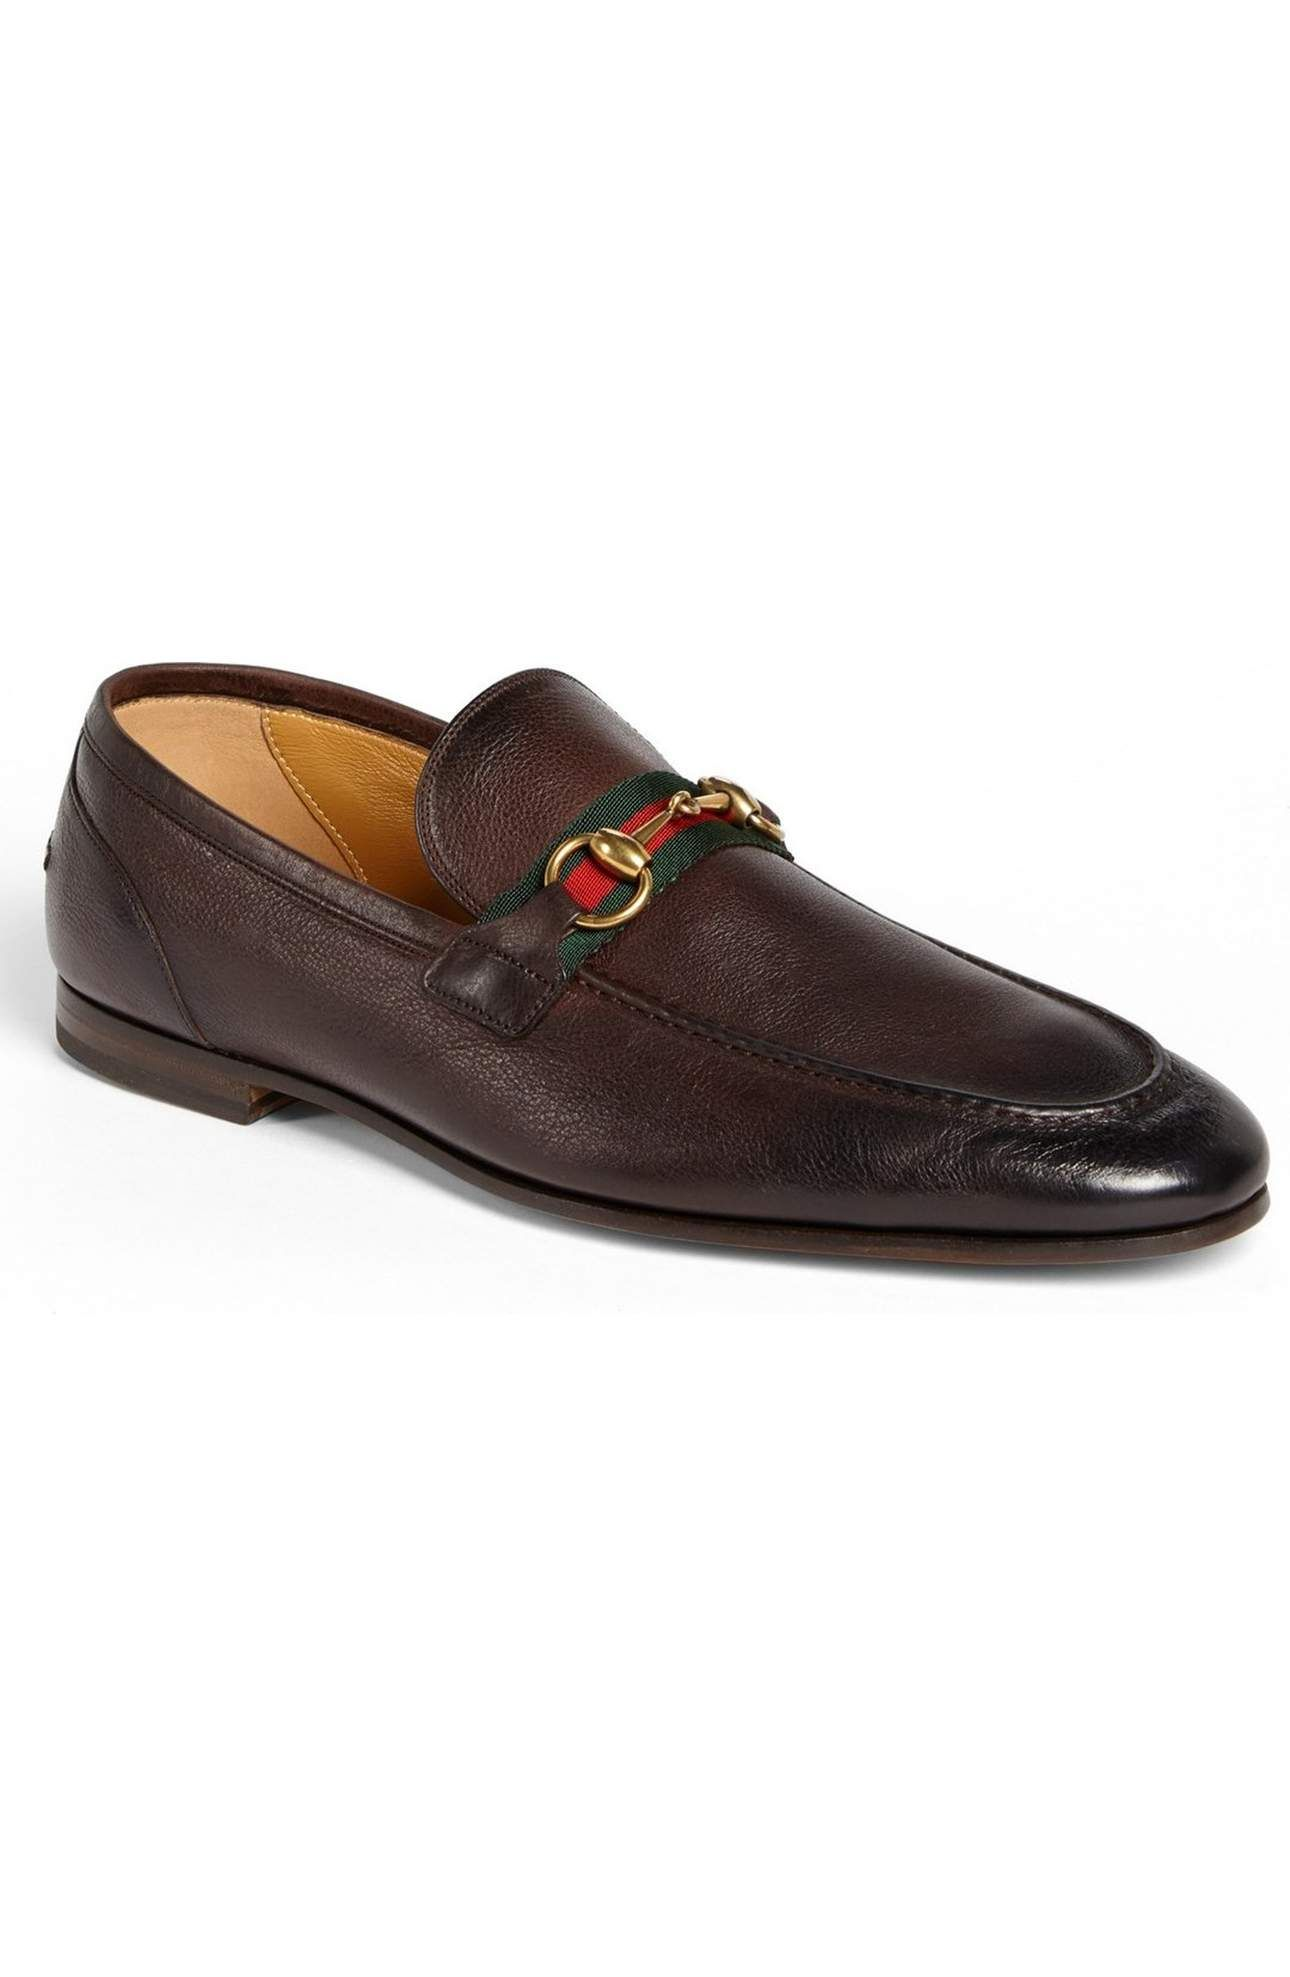 36f7798b925 Product Image 1 Bit Loafers